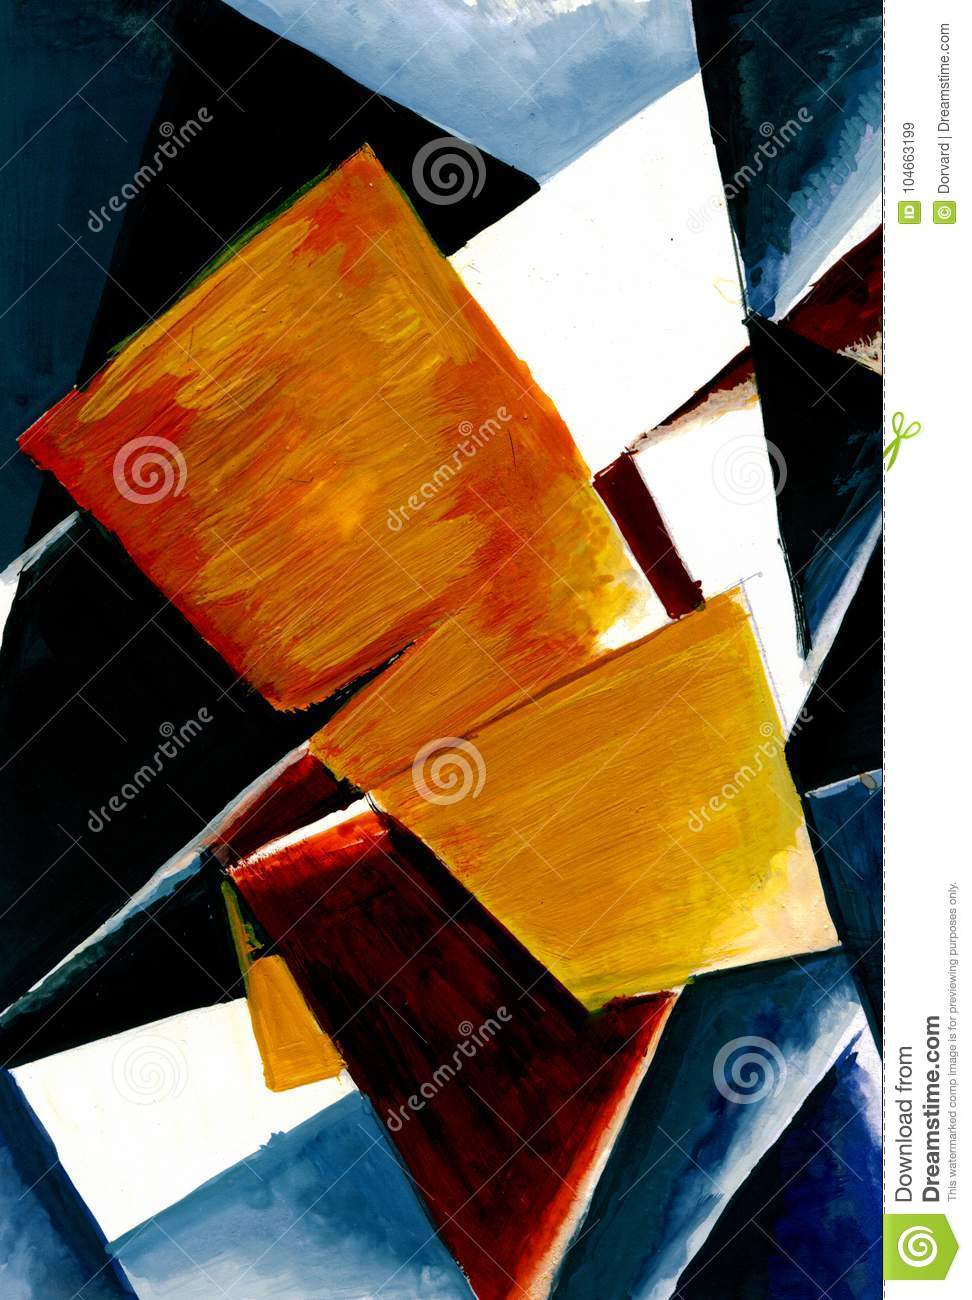 Abstract composition of color planes